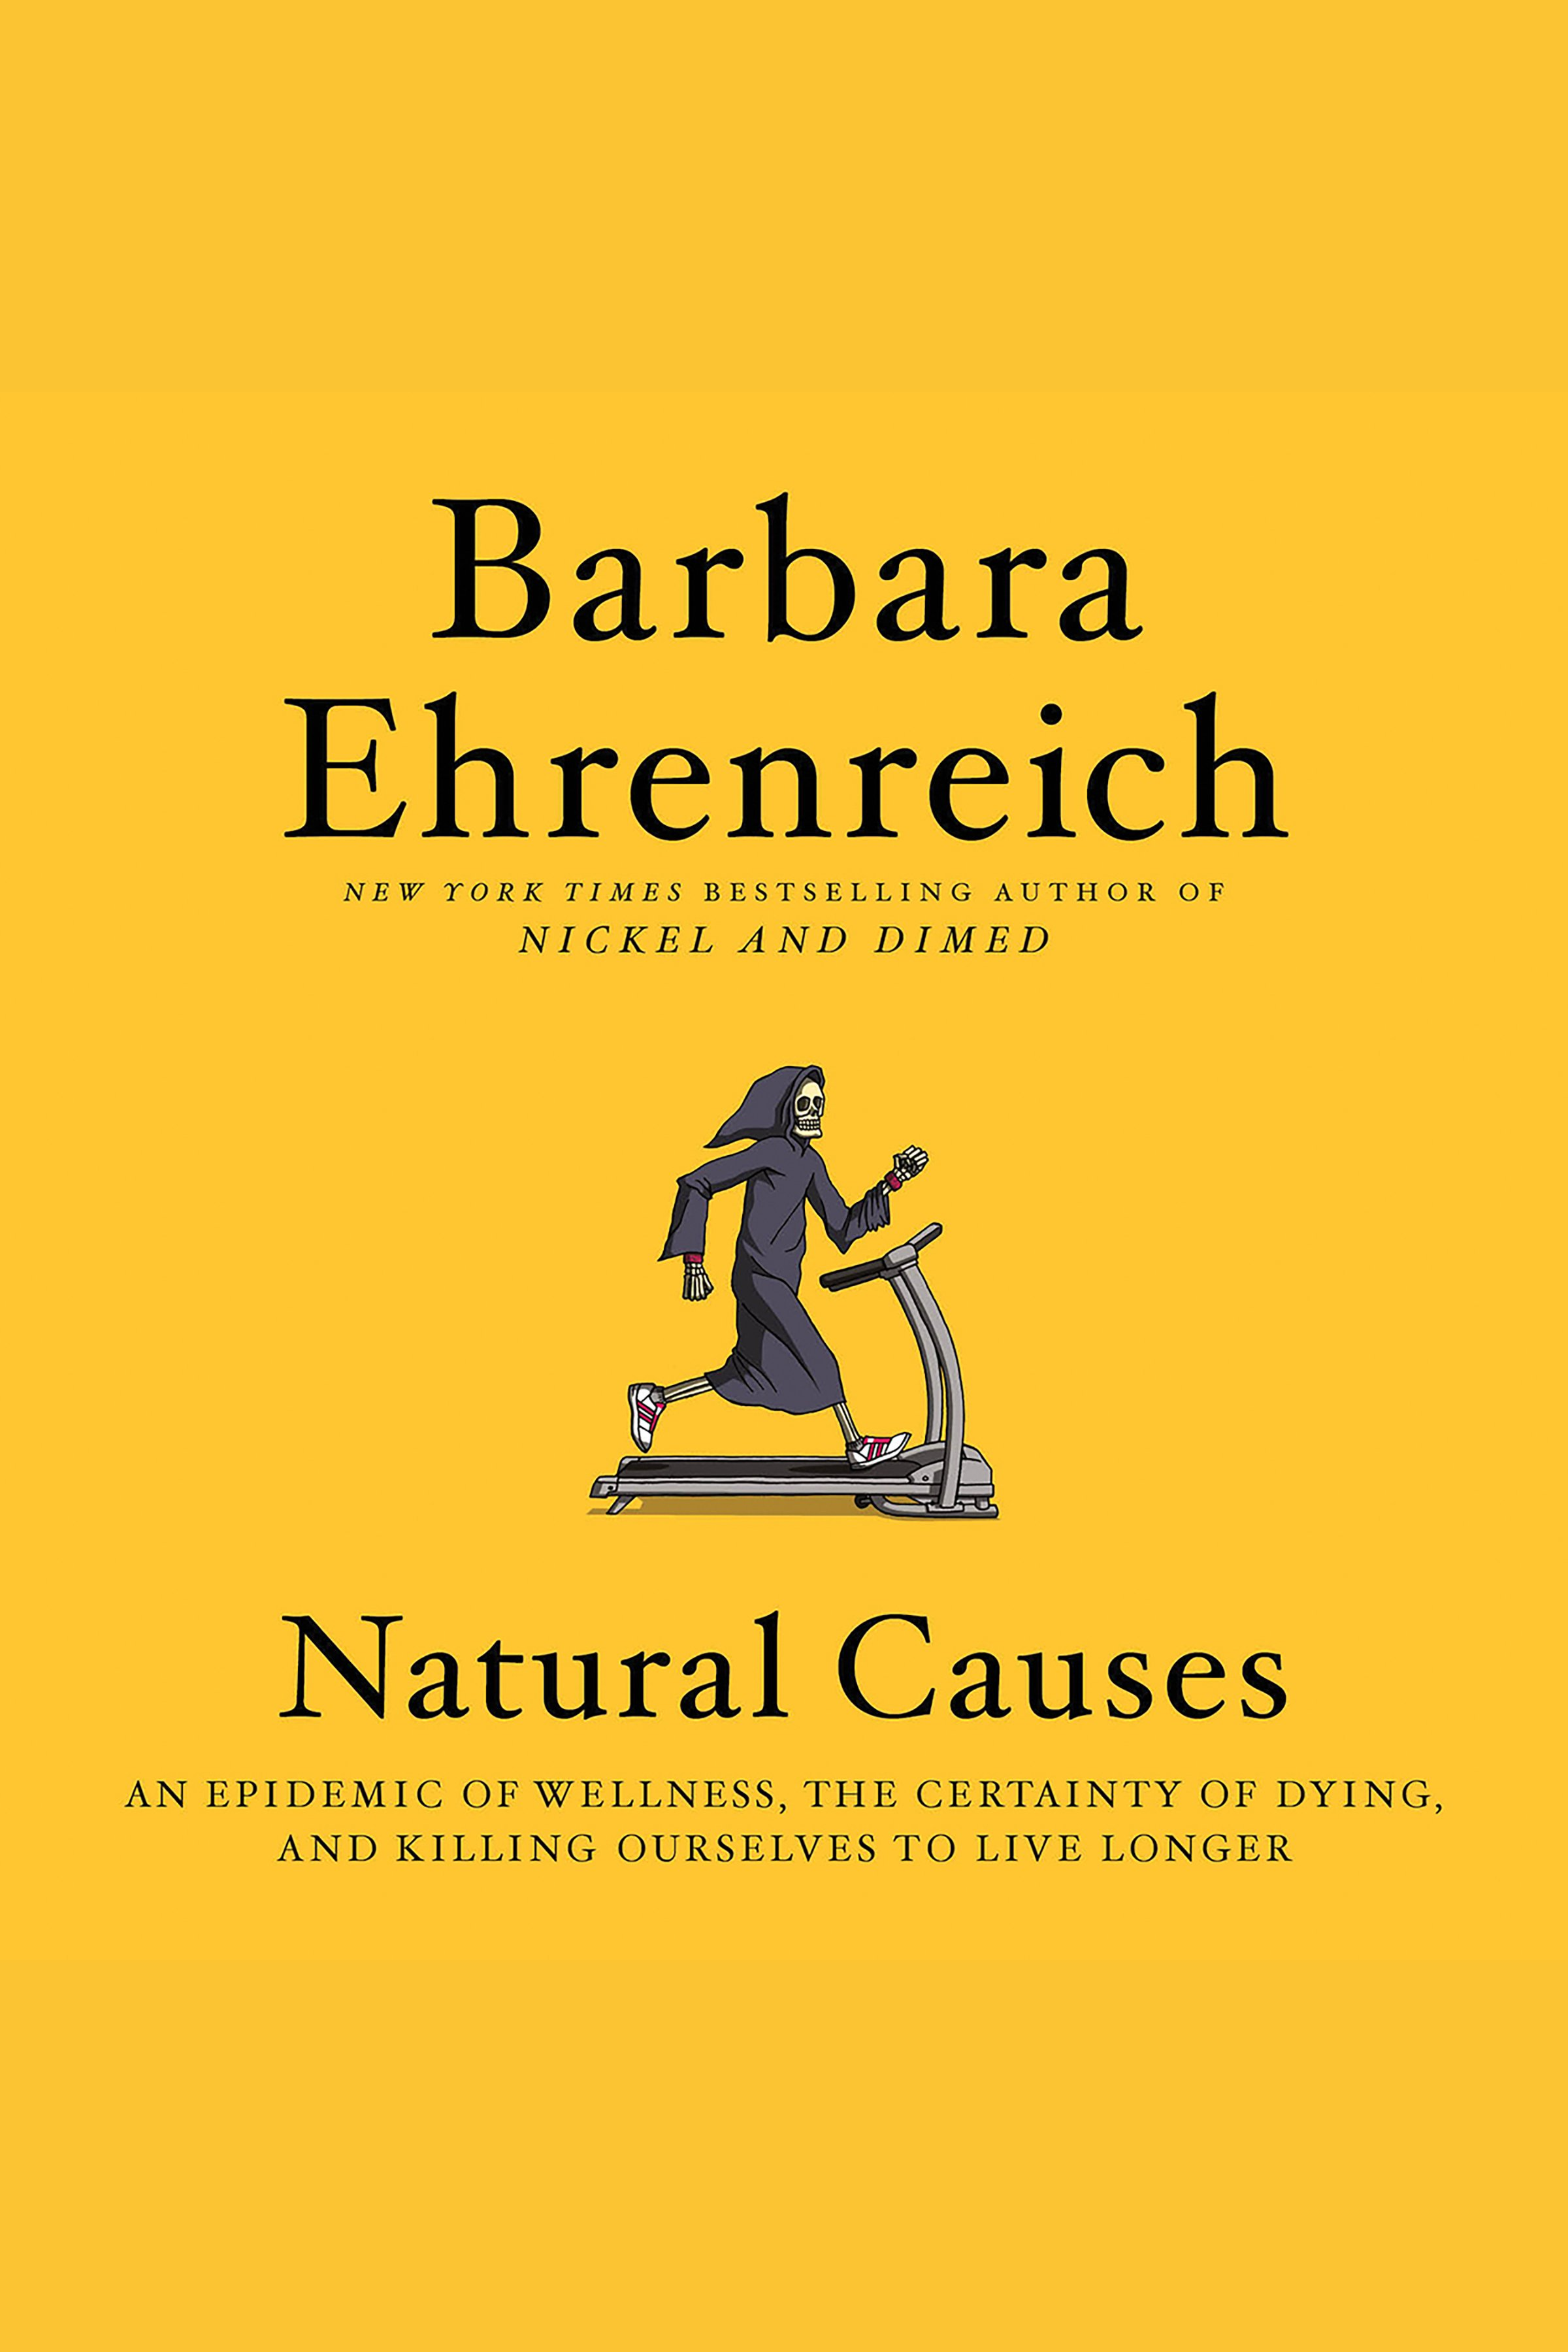 Natural Causes An Epidemic of Wellness, the Certainty of Dying, and Killing Ourselves to Live Longer